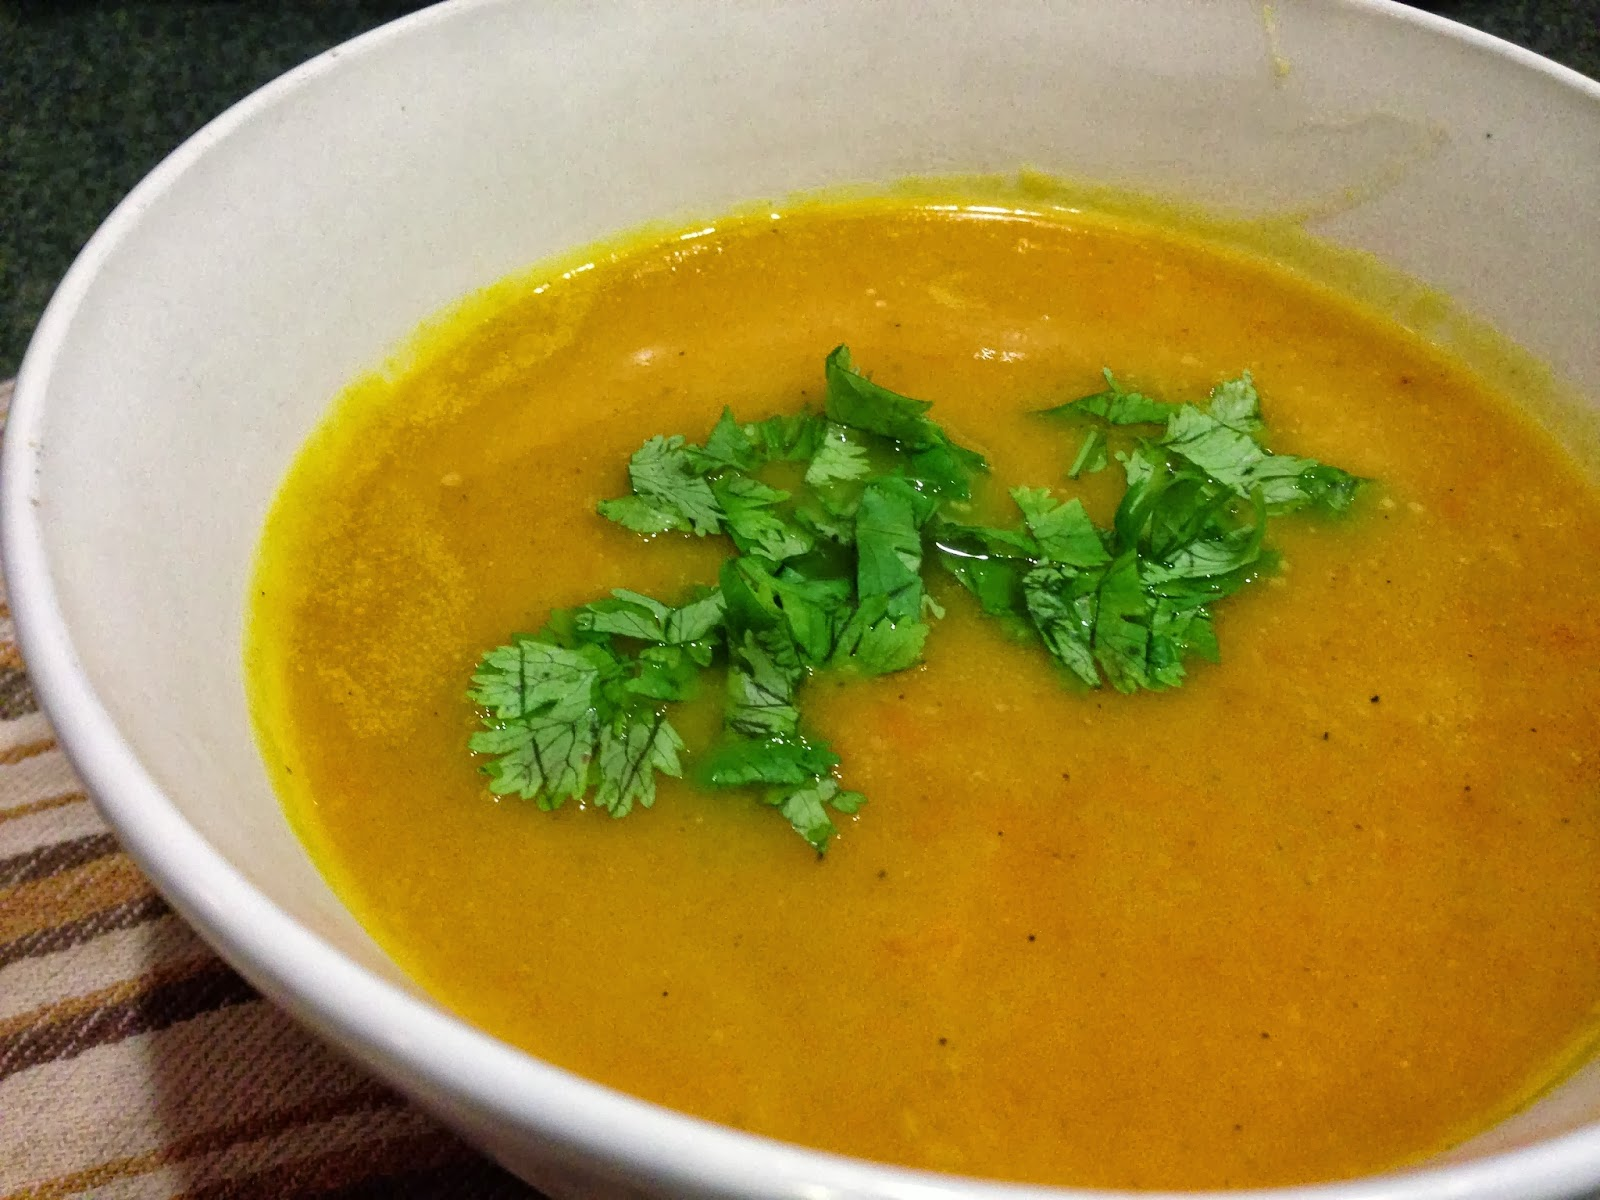 Some Sugar Added: Curried Butternut Squash & Carrot Soup